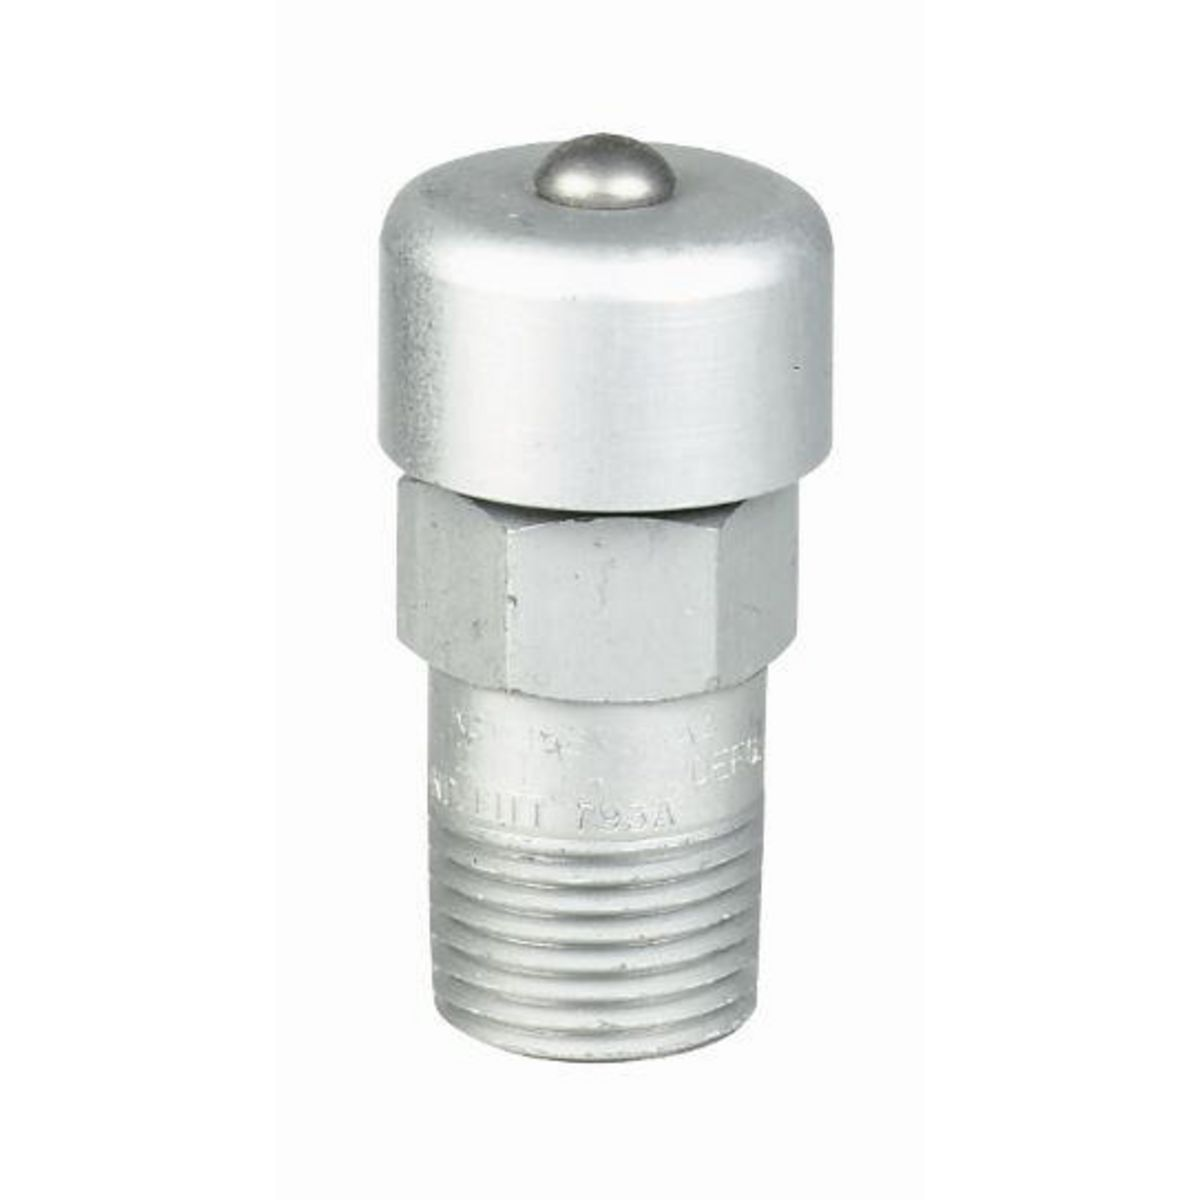 Hubbell Inc  KB1B Breather, 1/2 Inch Entry Thread, Aluminum